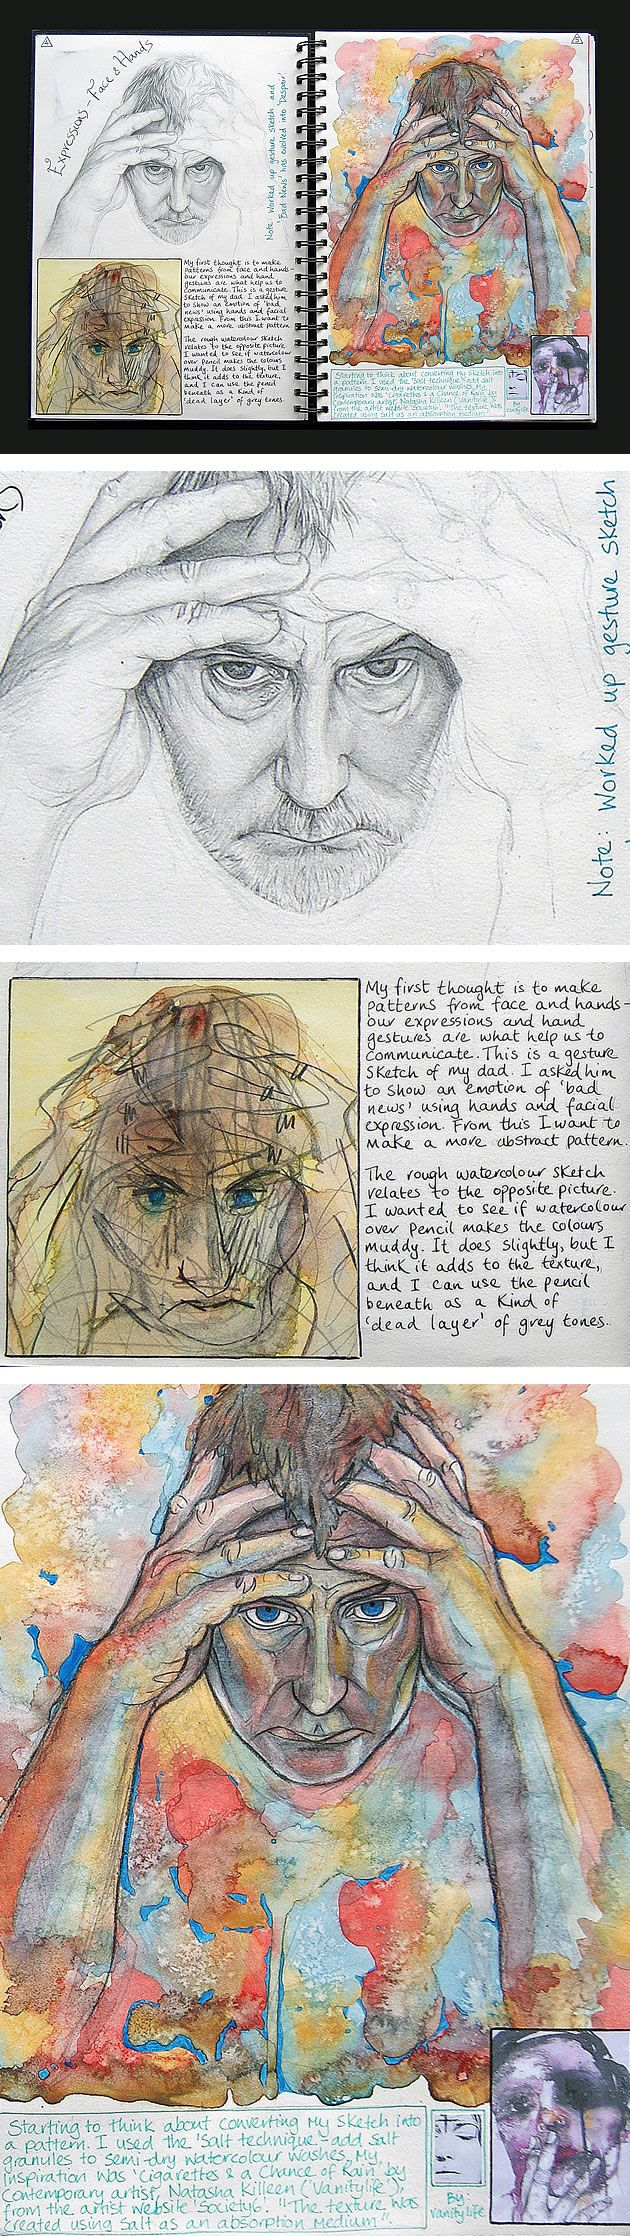 Project identity sketchbook page - A Level student (UK) sketchbook and final painting / compares to a concentration for AP Art